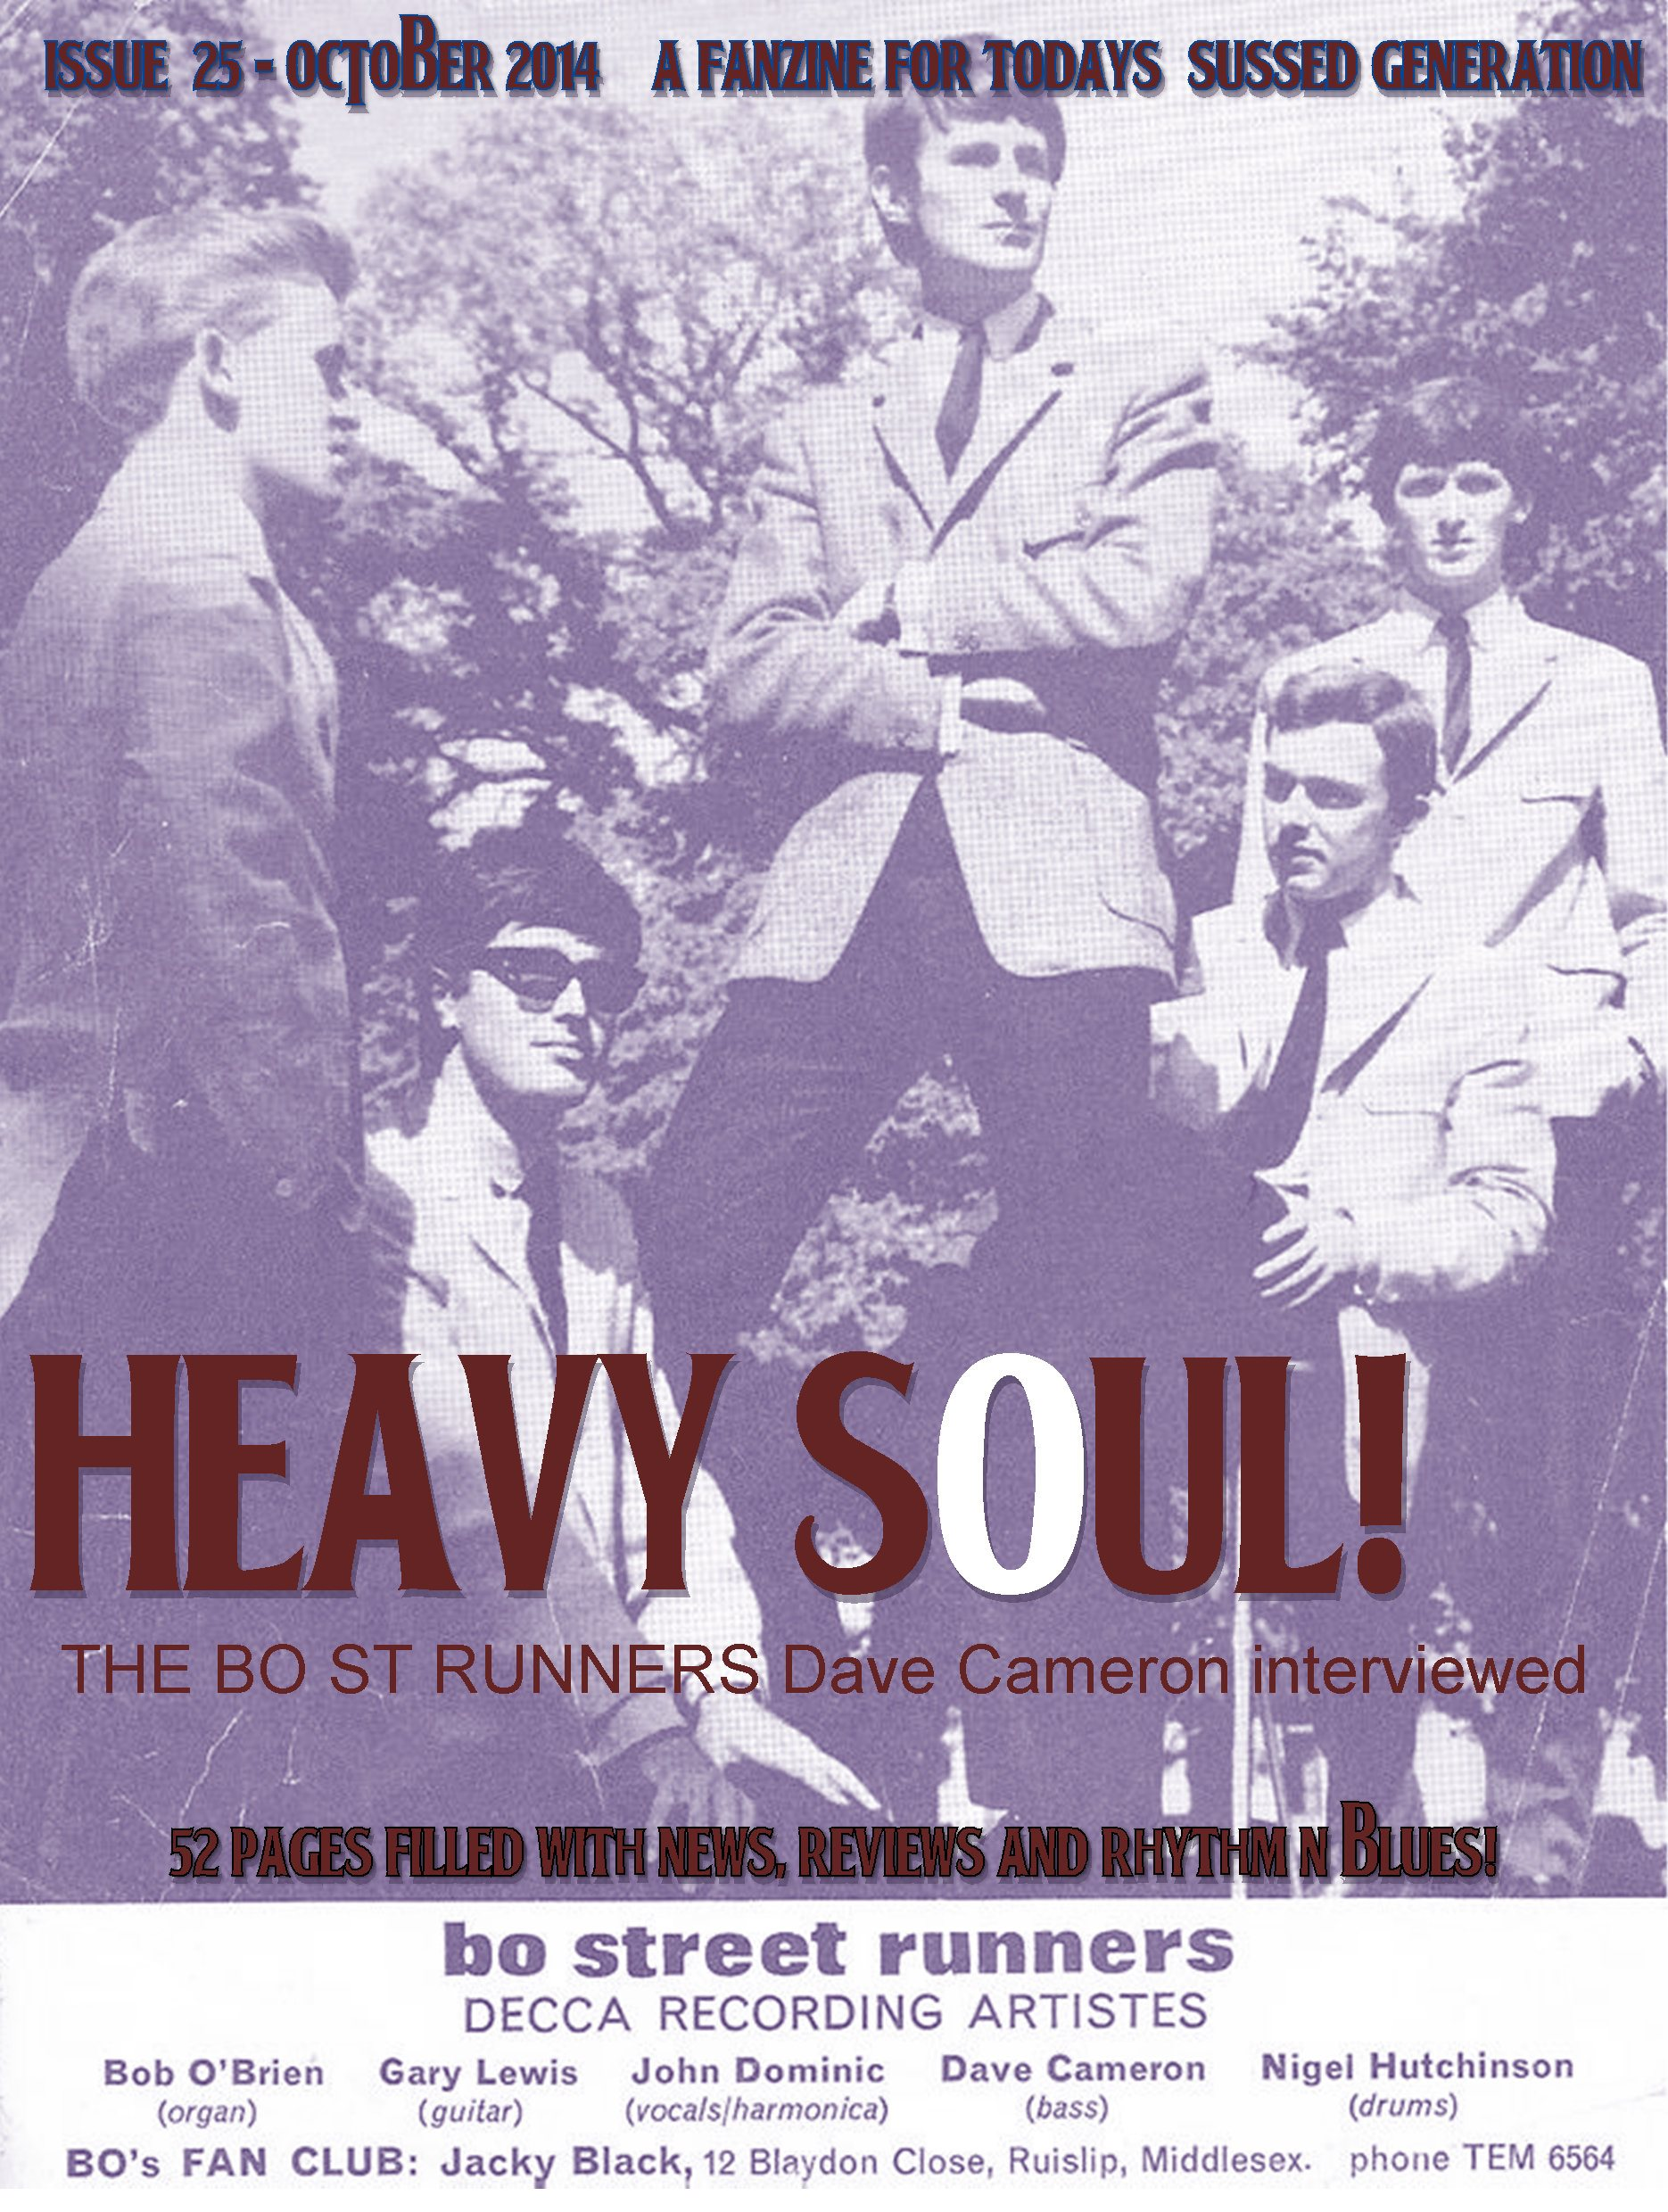 HEAVY SOUL! MODZINE Issue 25